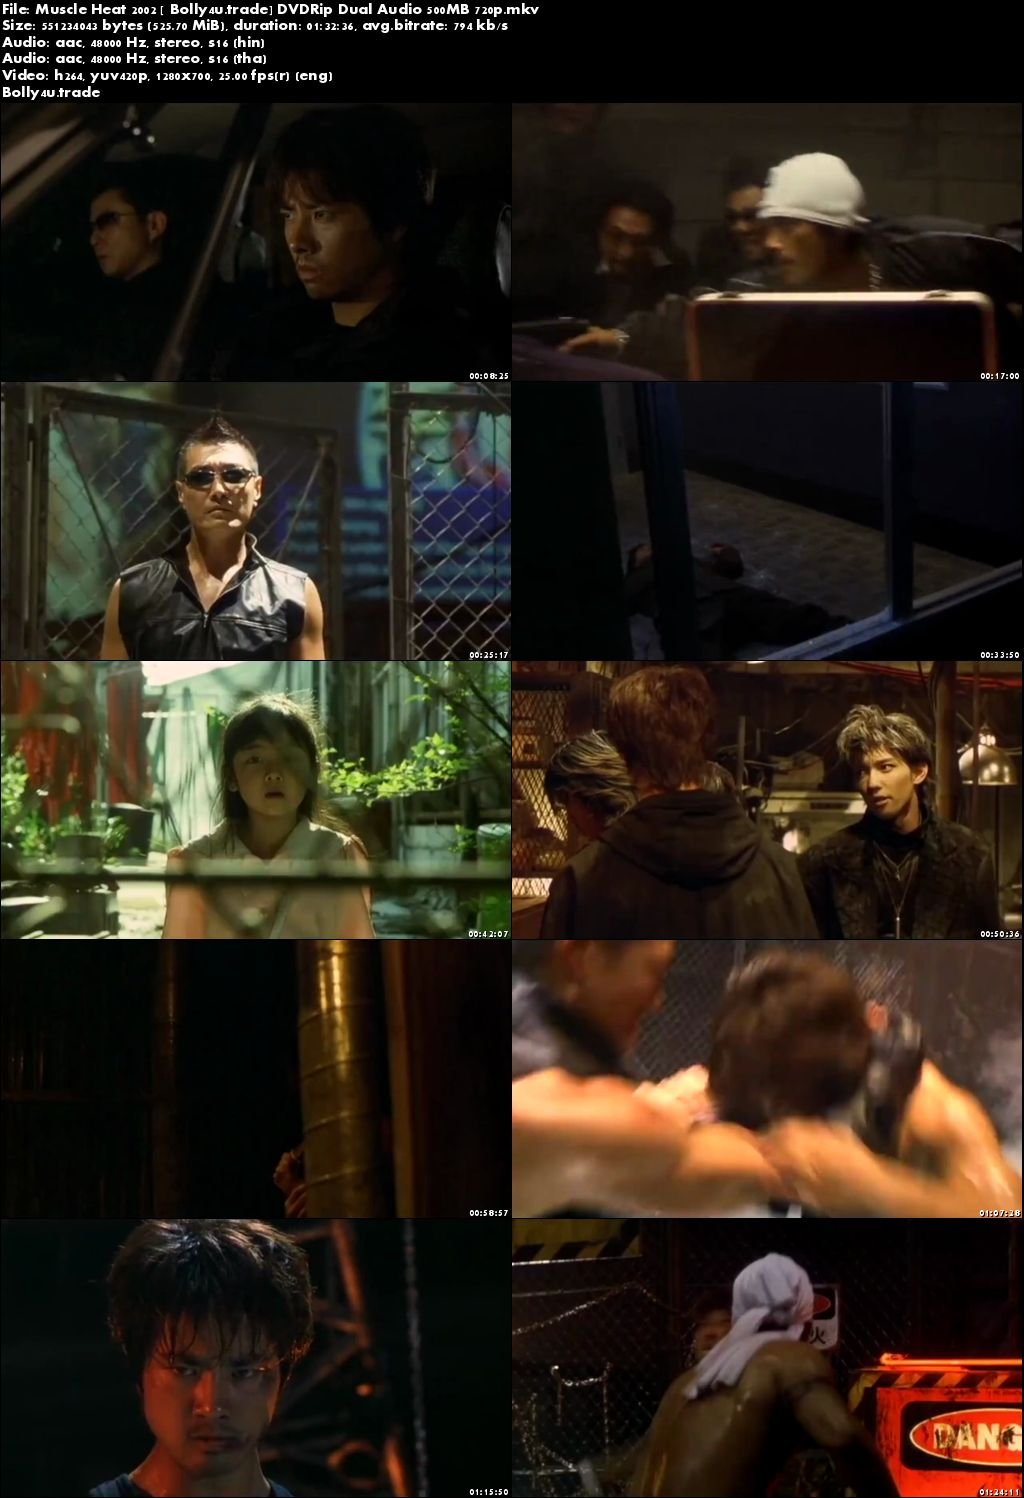 Muscle Heat 2002 DVDRip 300Mb Hindi Dual Audio 480p Download